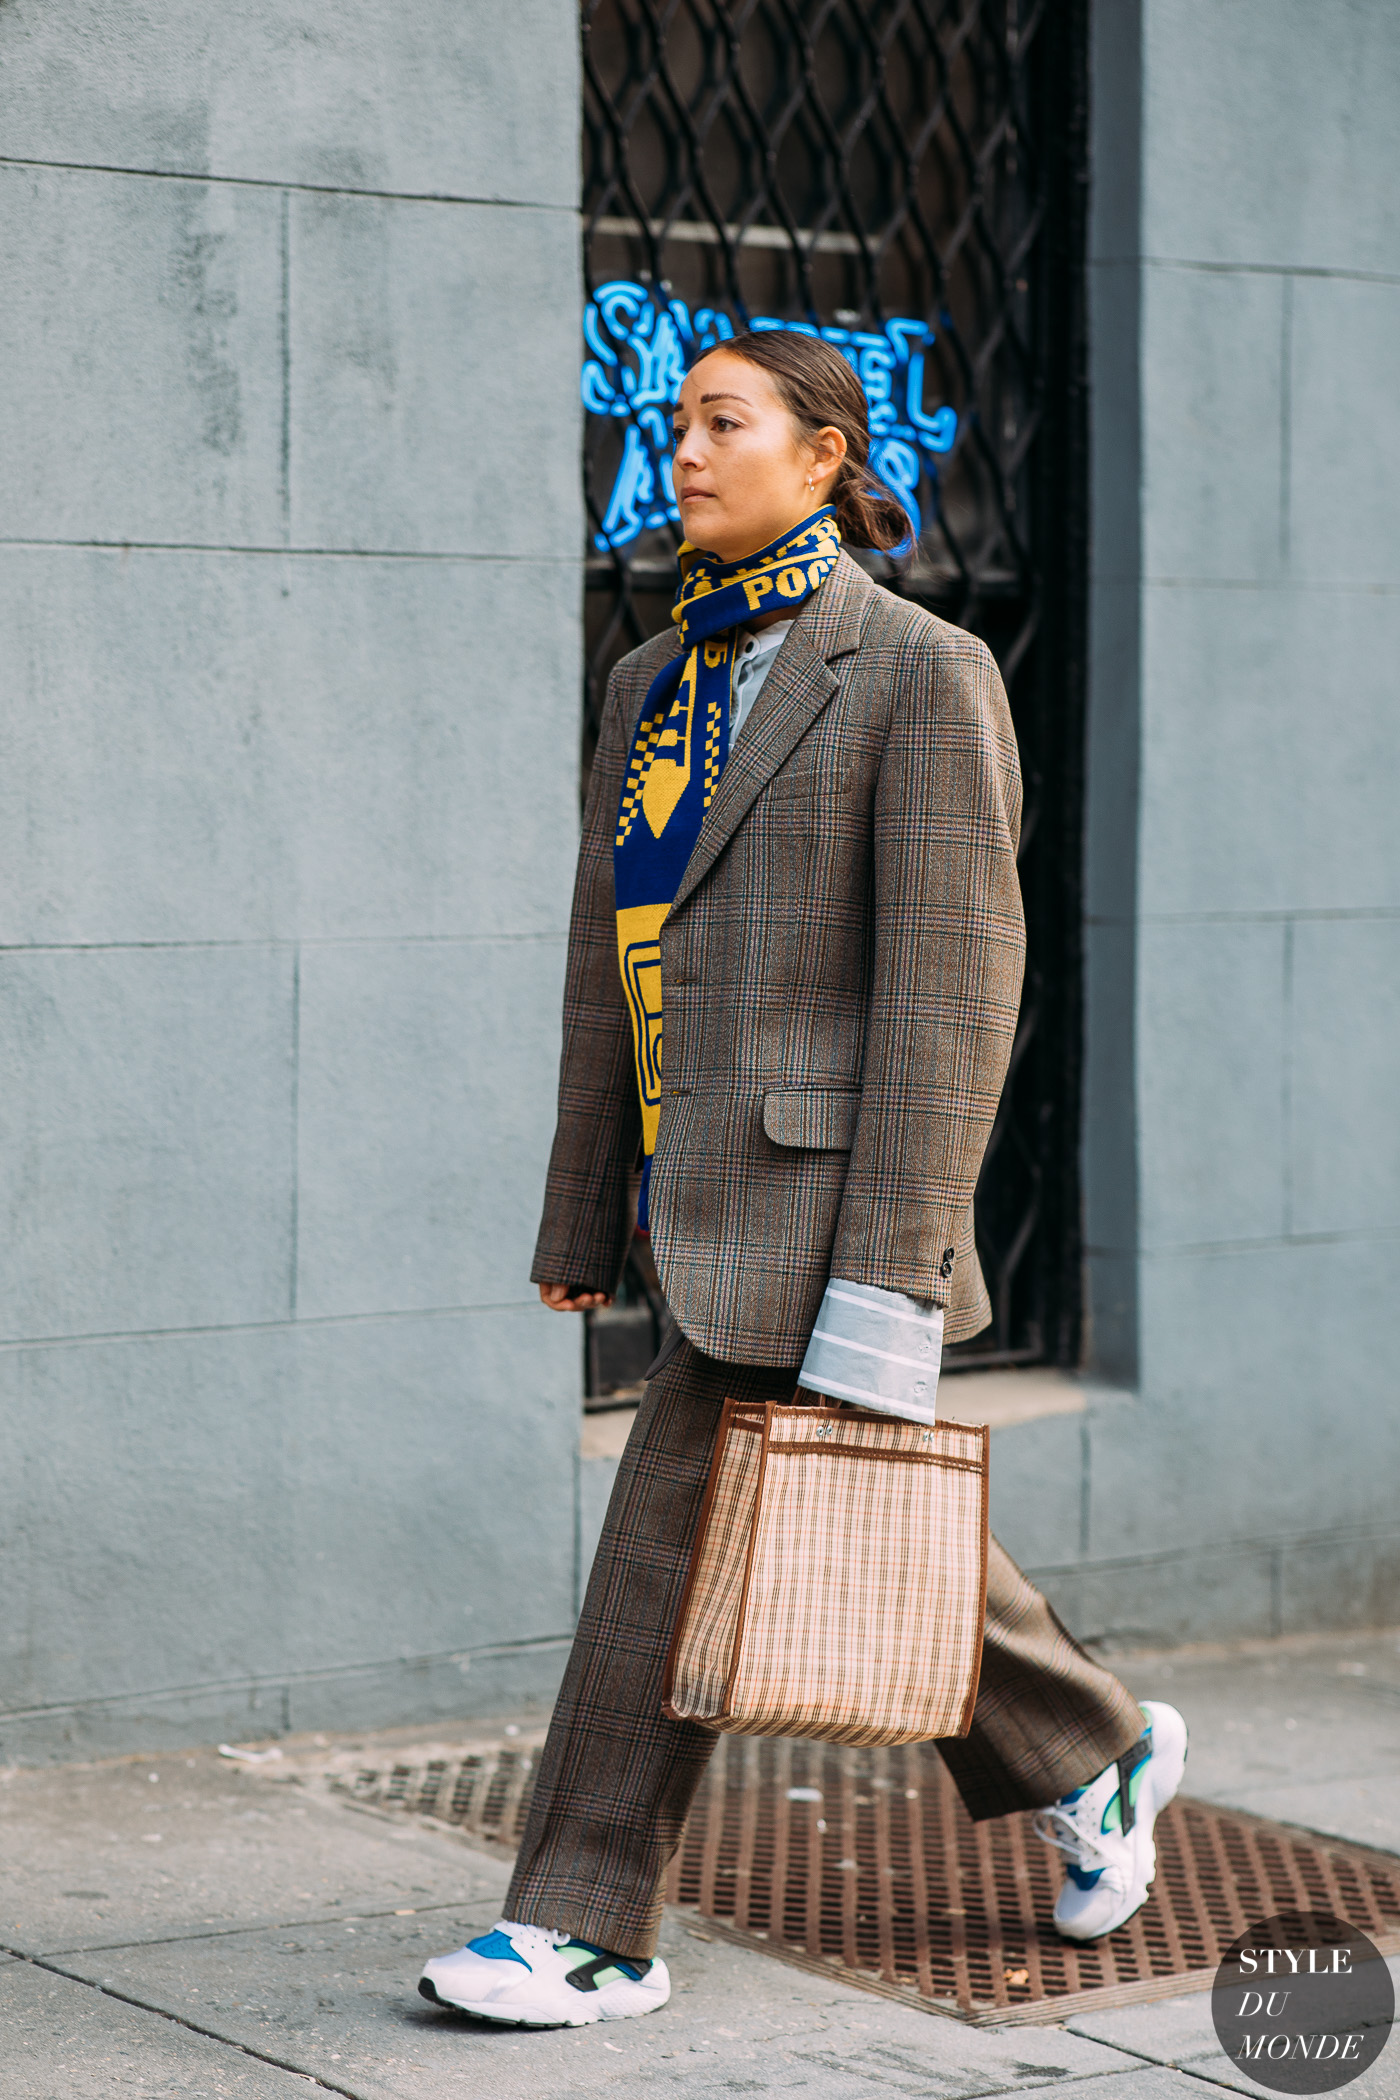 Rachael Wang by STYLEDUMONDE Street Style Fashion Photography NY FW18 20180209_48A2411